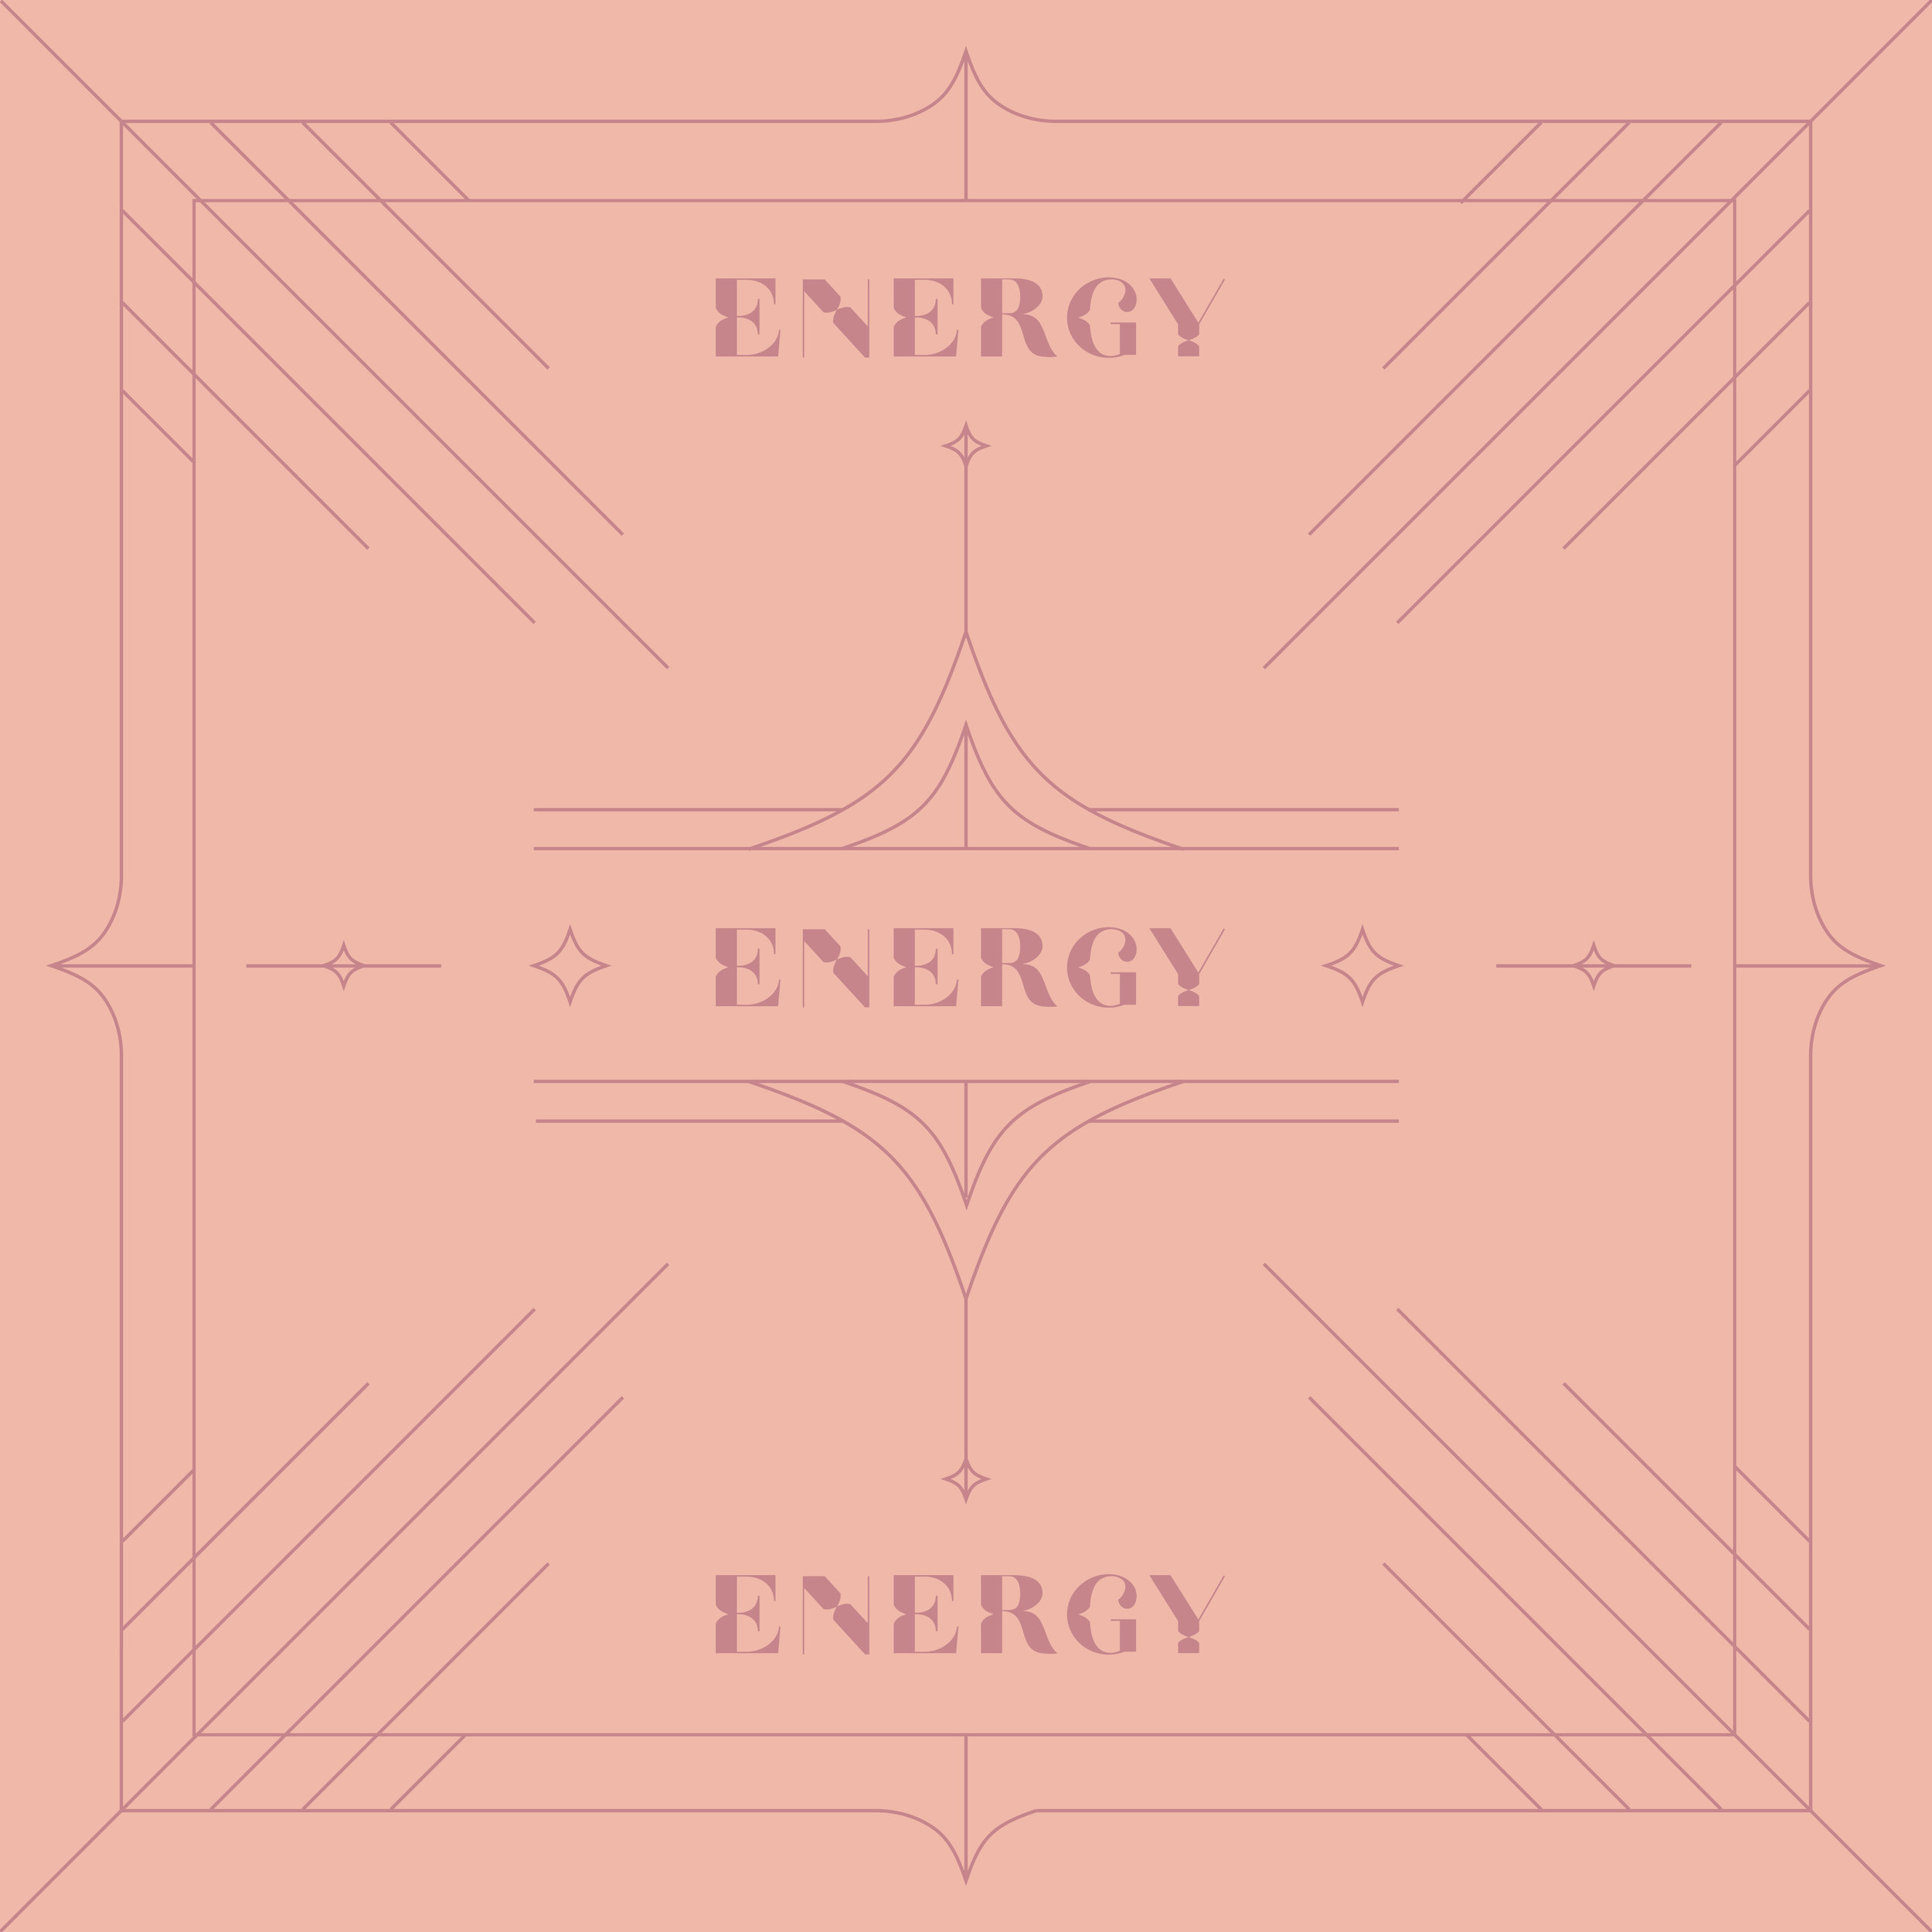 Clarity-Candle-Playlist-Cover-Design-04-Energy.jpg